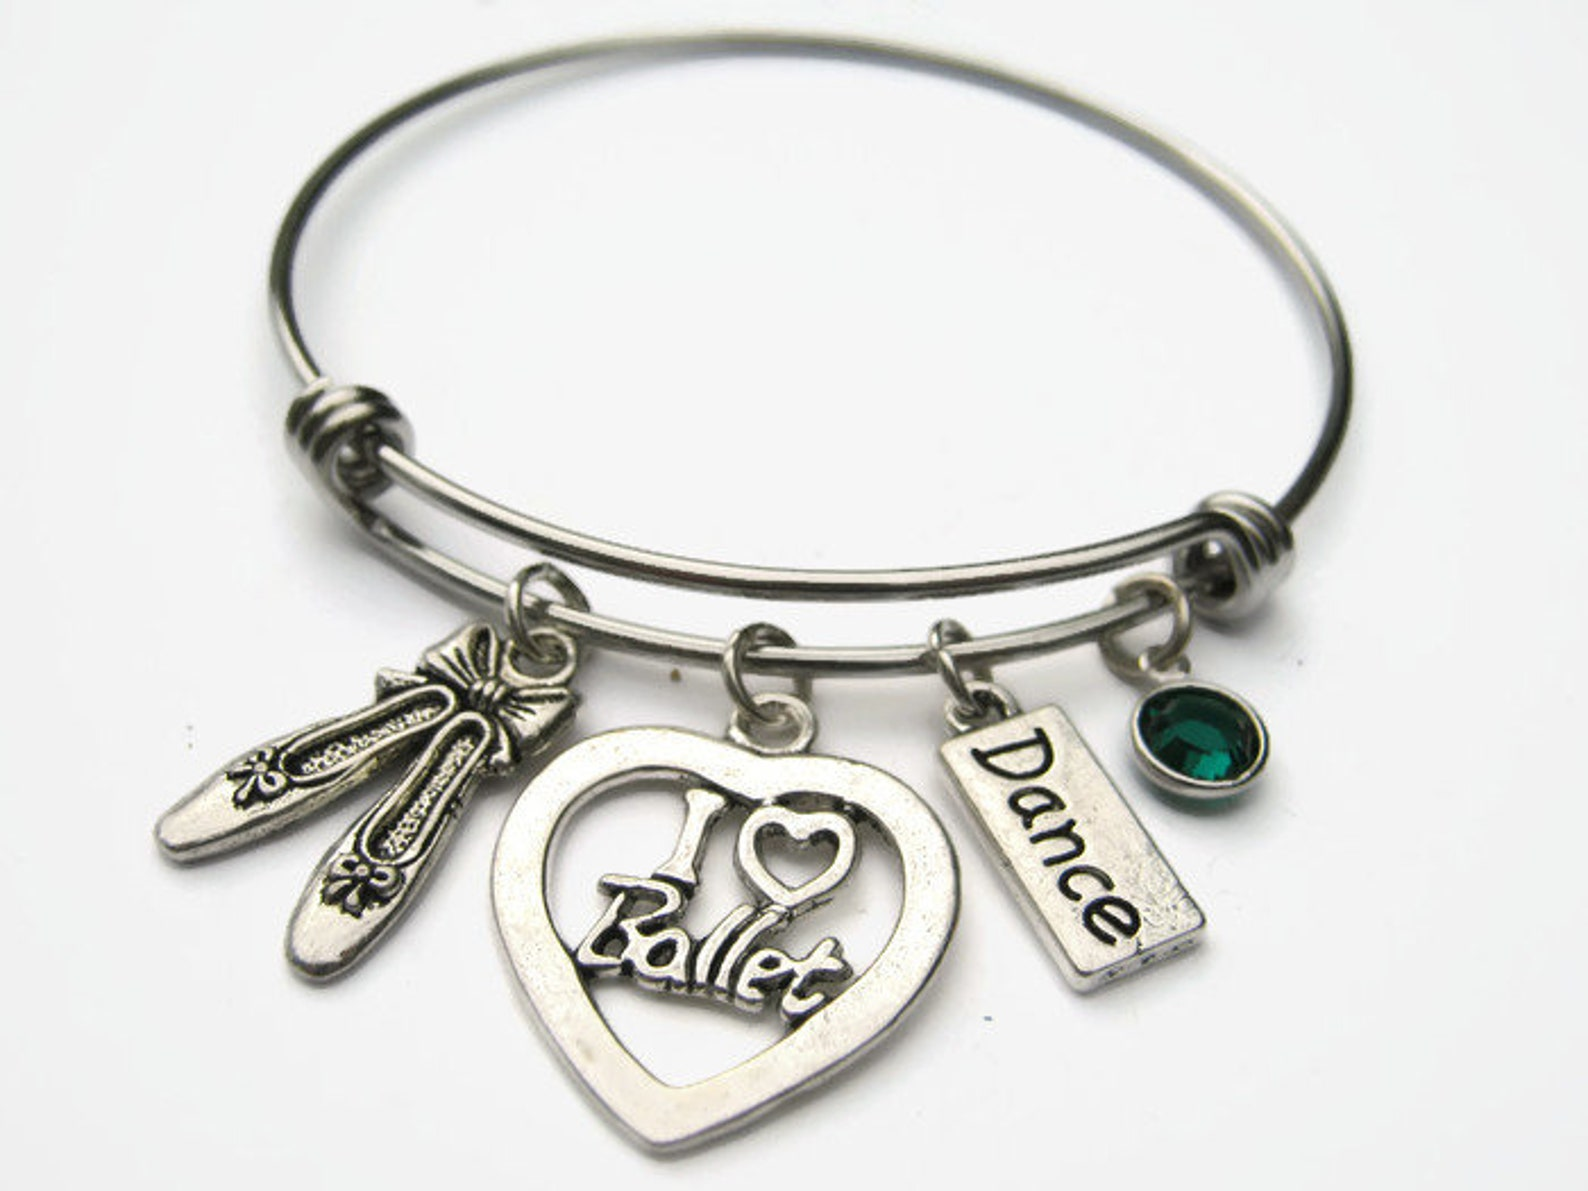 personalized i love ballet bracelet, expandable bangle bracelet, stainless steel bracelet, dance jewelry, ballet shoes, athletic